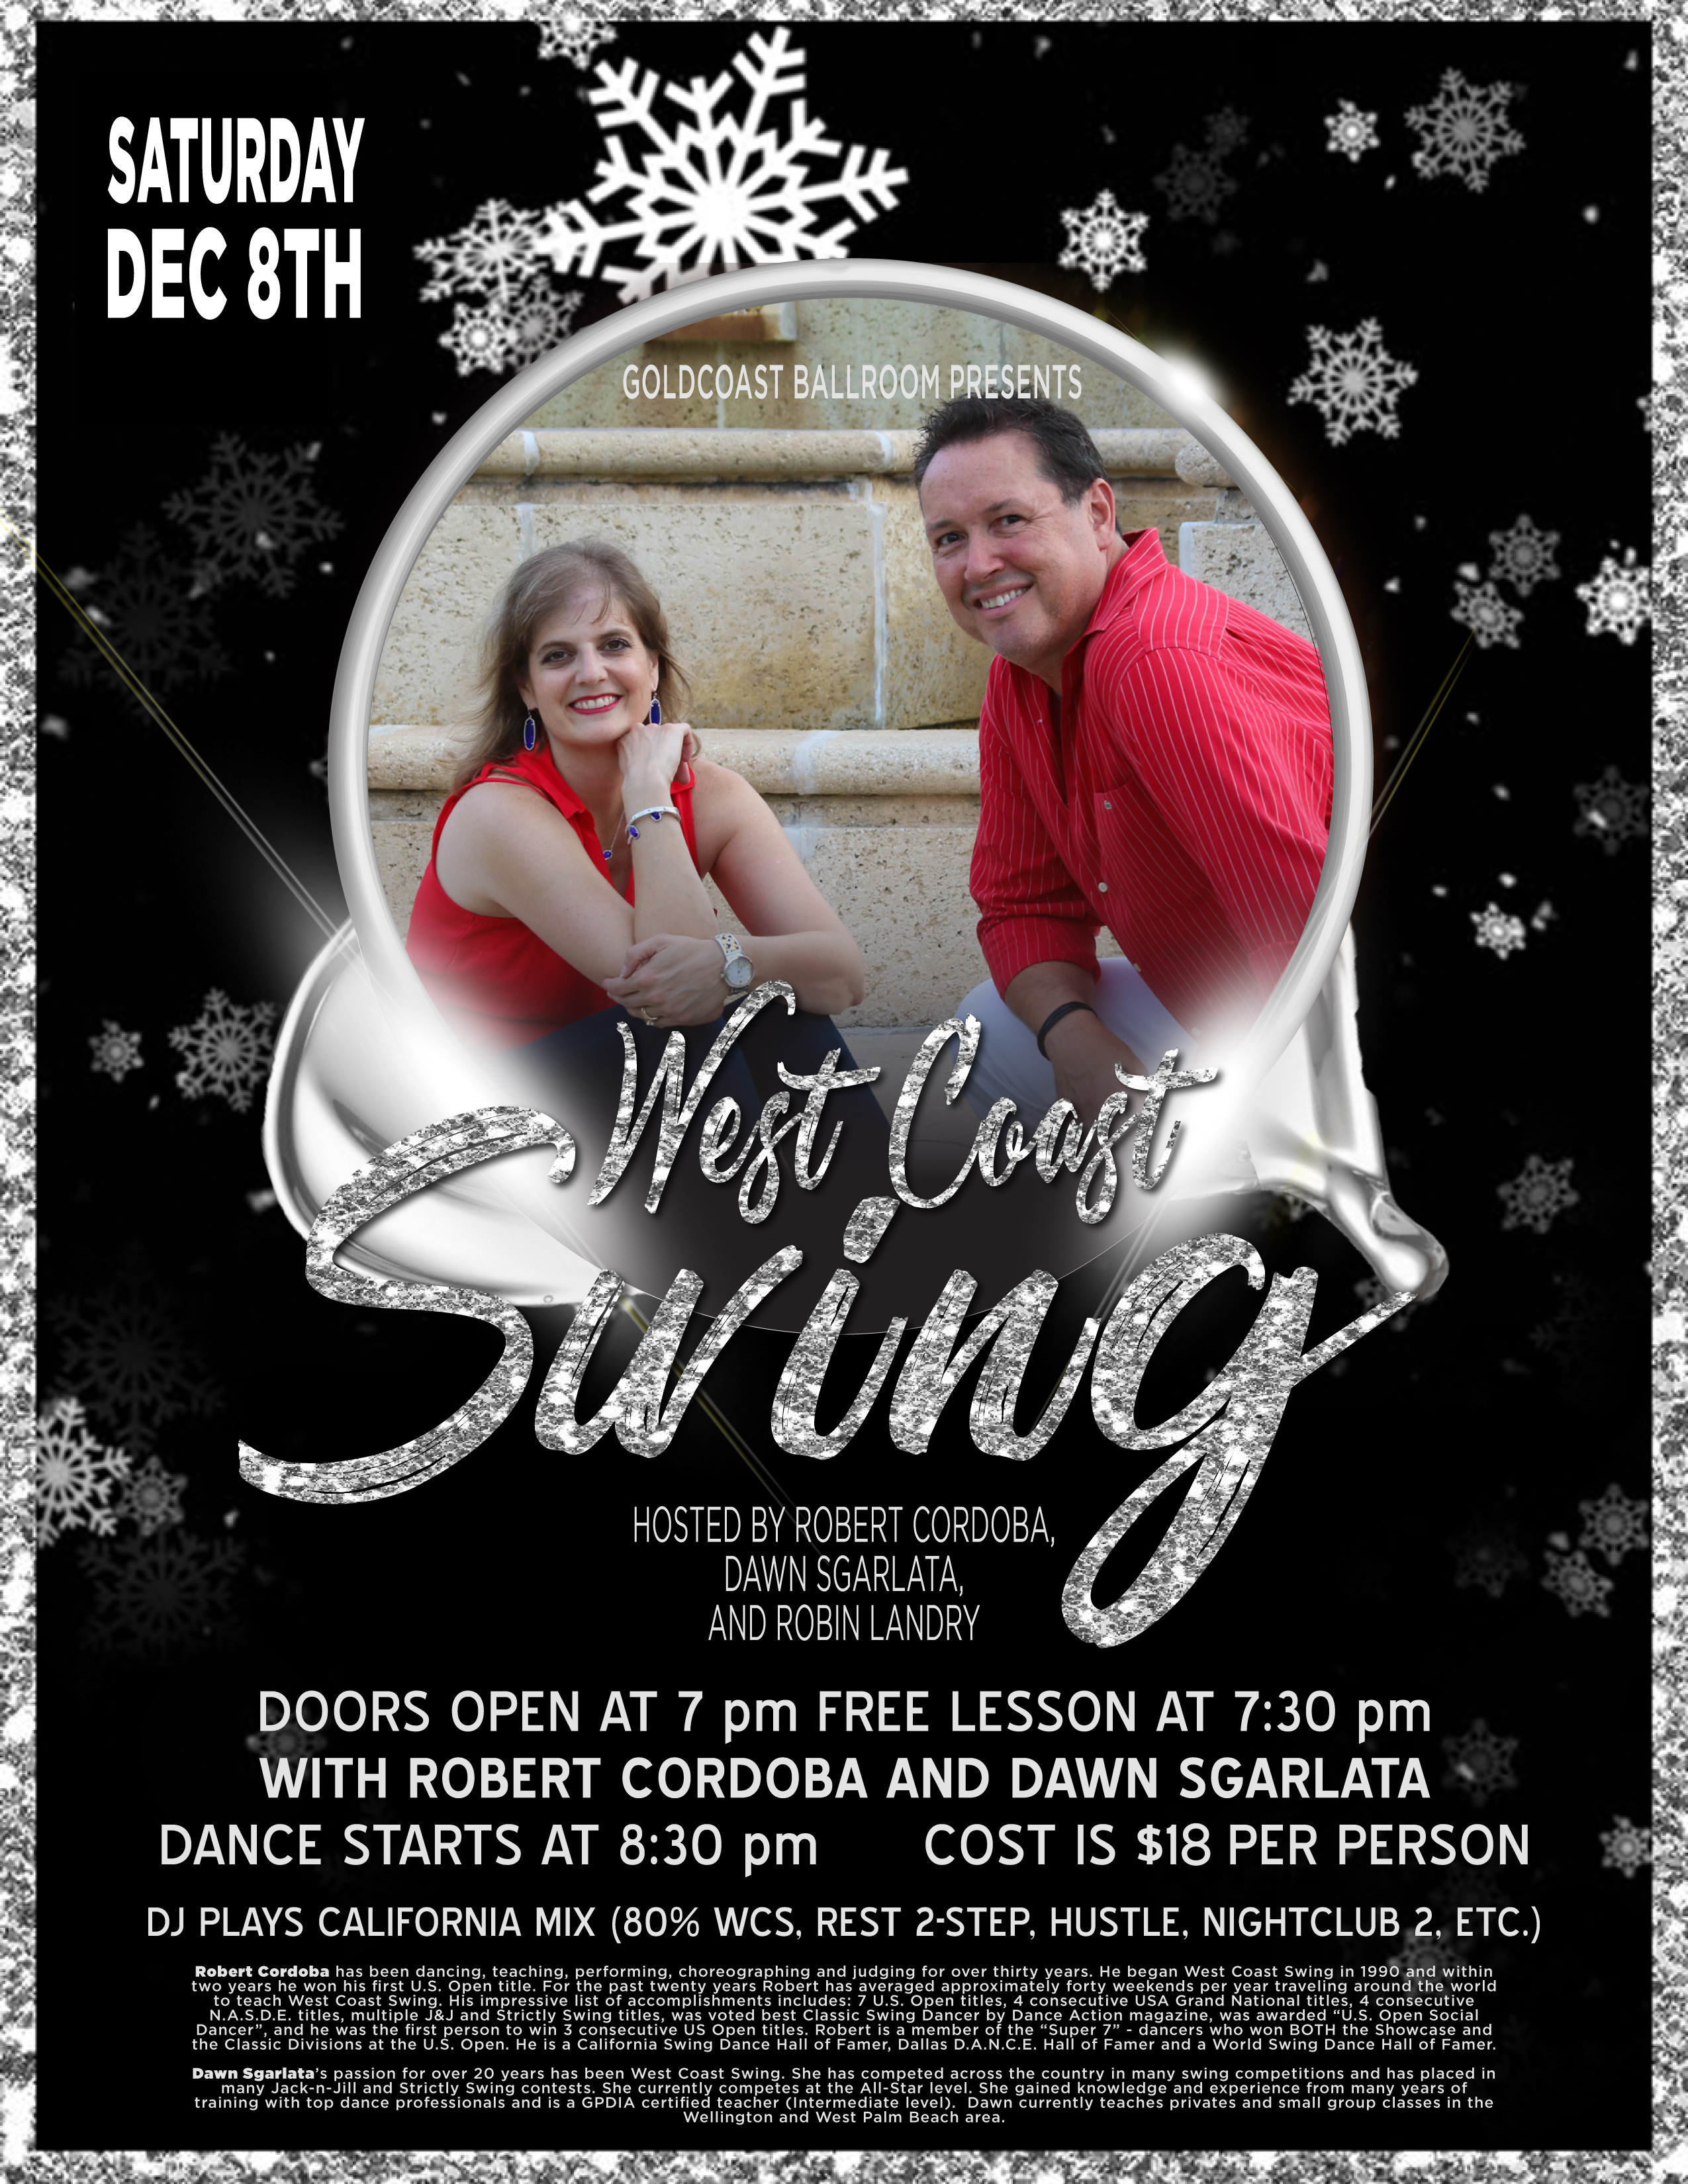 WCS Night - Saturday, December 8, 2018 - with Dawn Sgarlata & Robert Cordoba